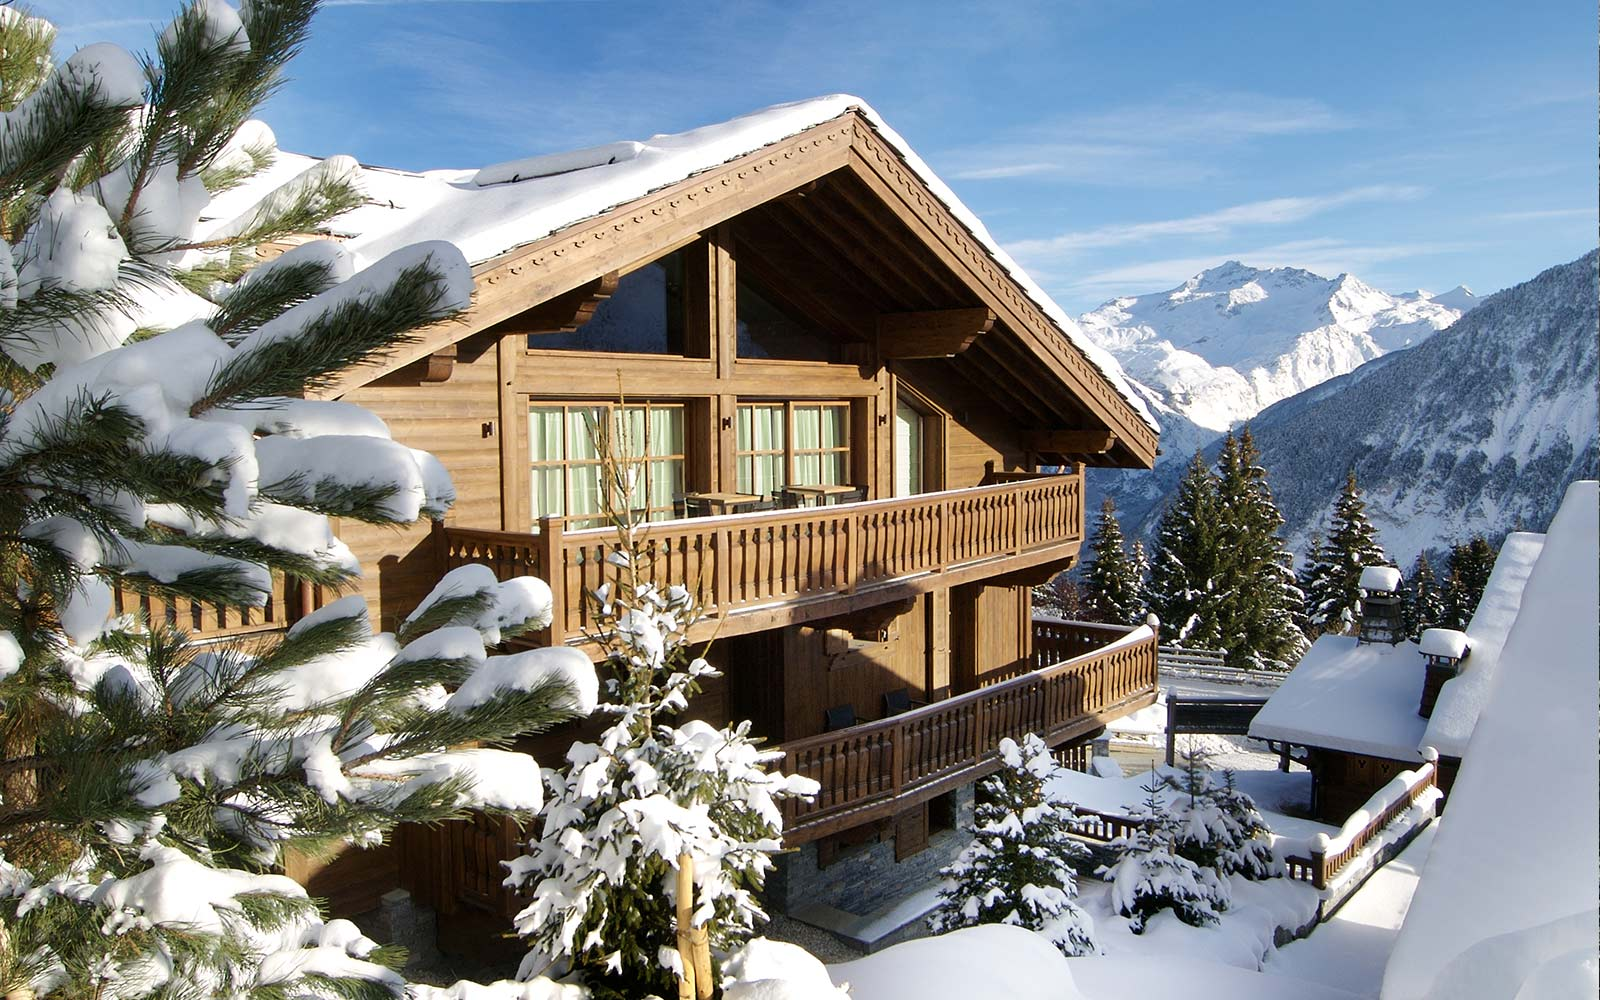 Chalet blanchot in courchevel 1850 by skiboutique for Boutique skihotel